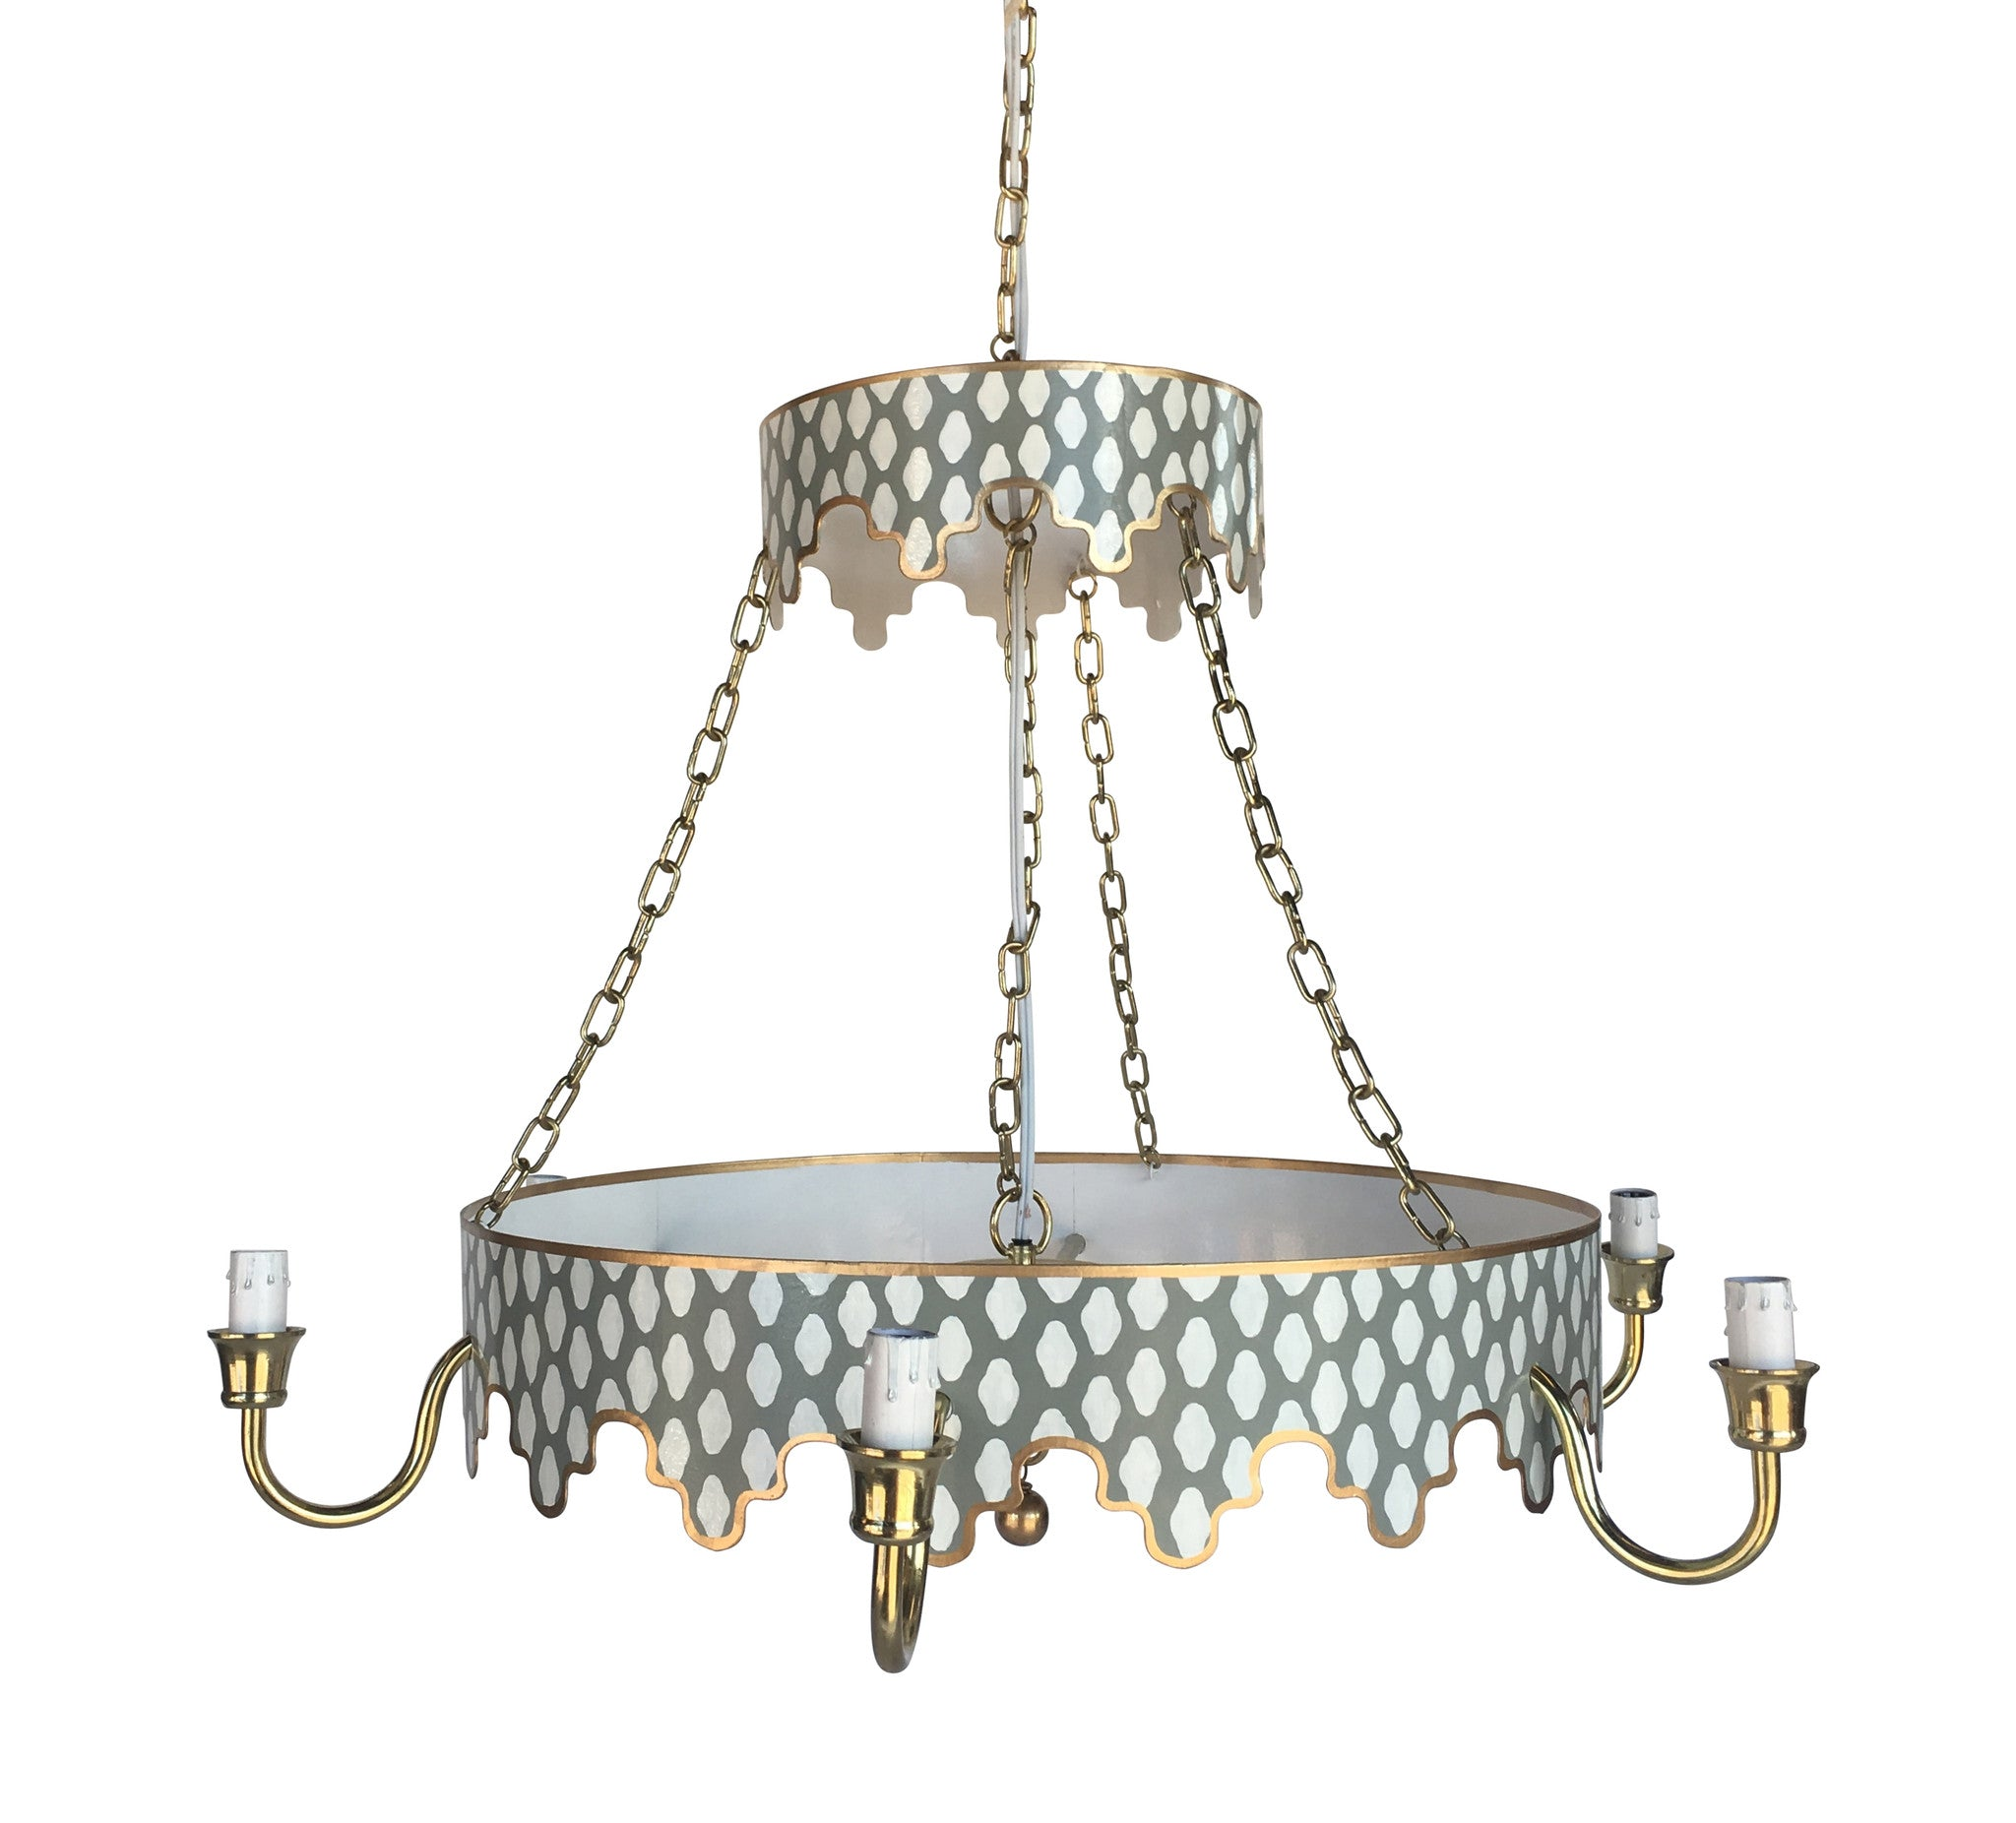 Parsi in grey chandelier dana gibson parsi in grey chandelier aloadofball Image collections